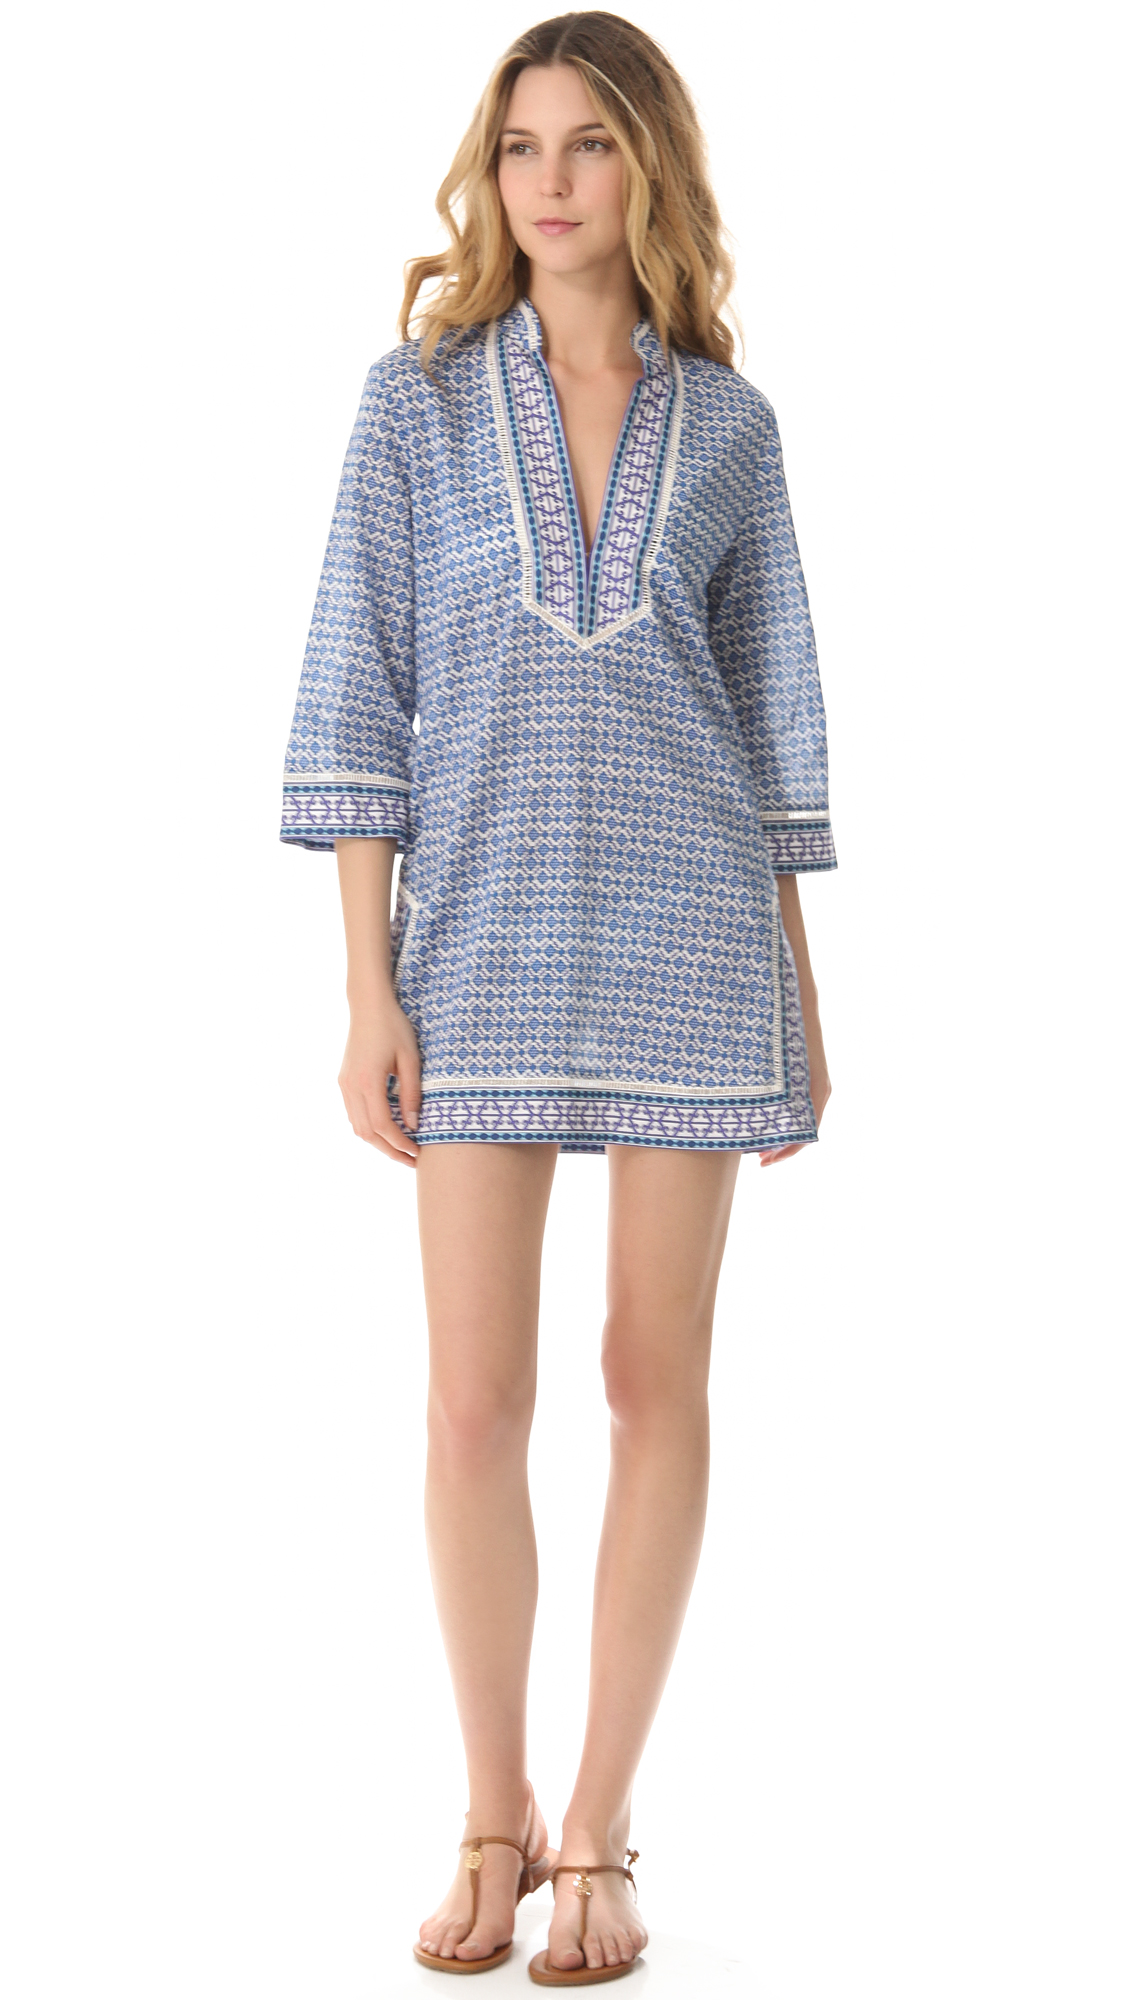 bced20eecb12 Tory Burch Moray Cover Up Tunic on PopScreen